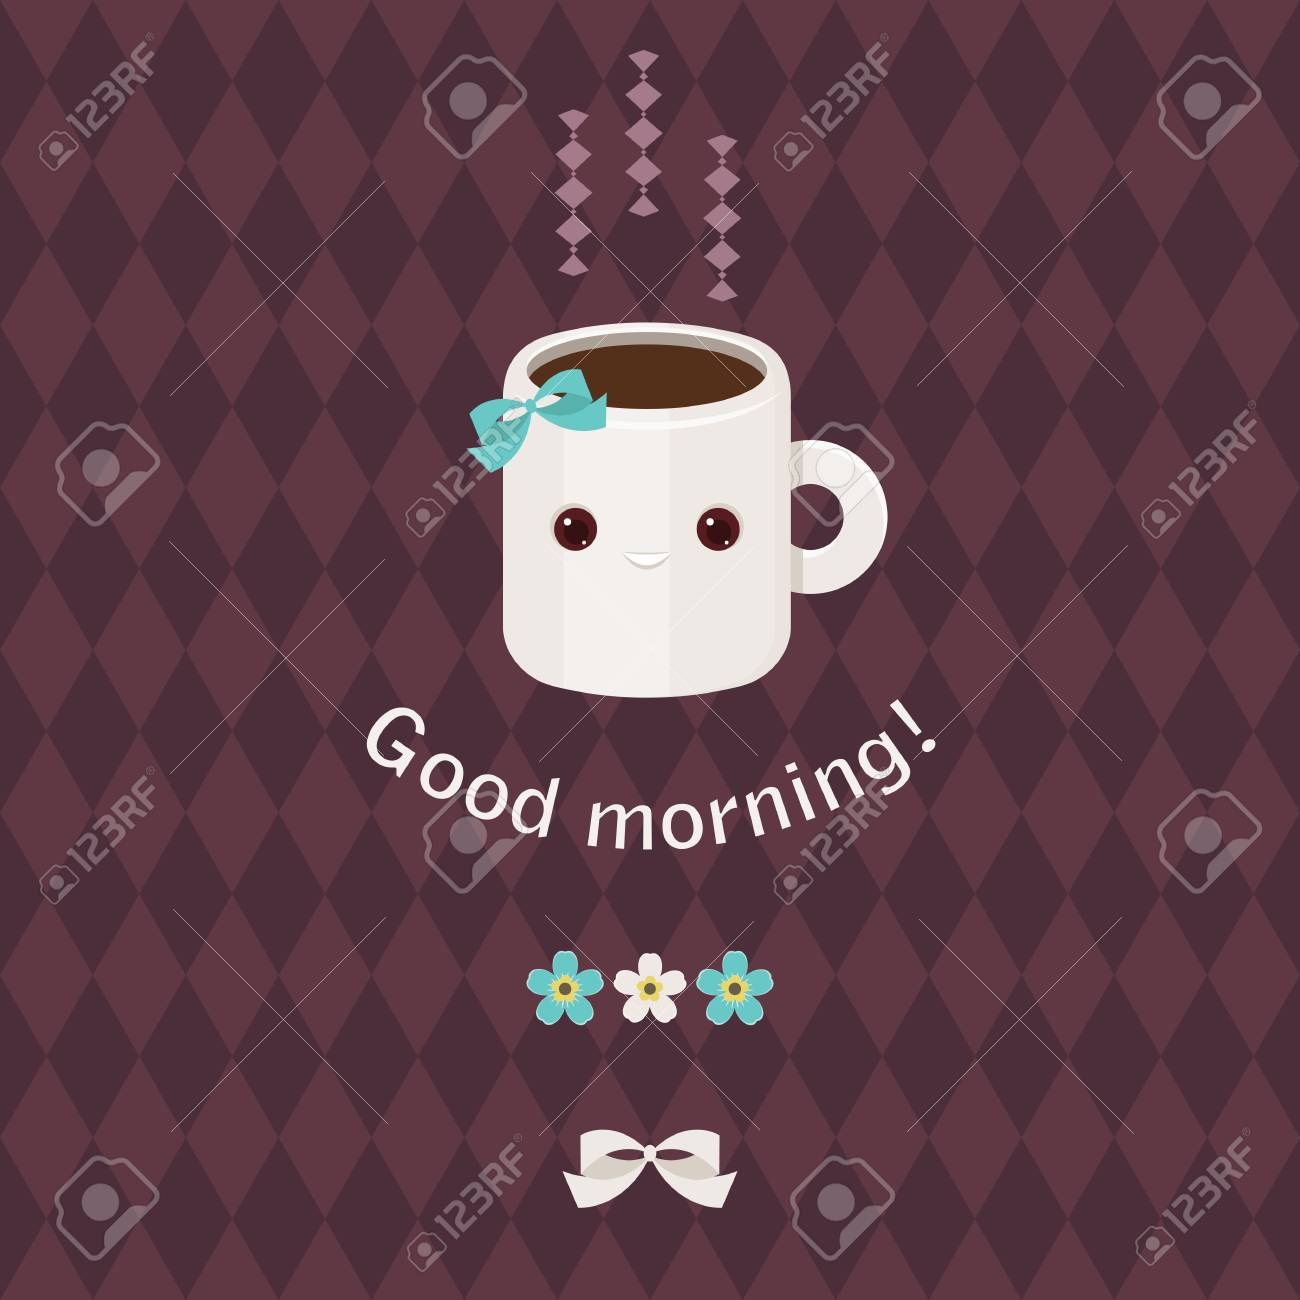 Good Morning Beautiful Greeting Card Adorable Coffee Cup Character